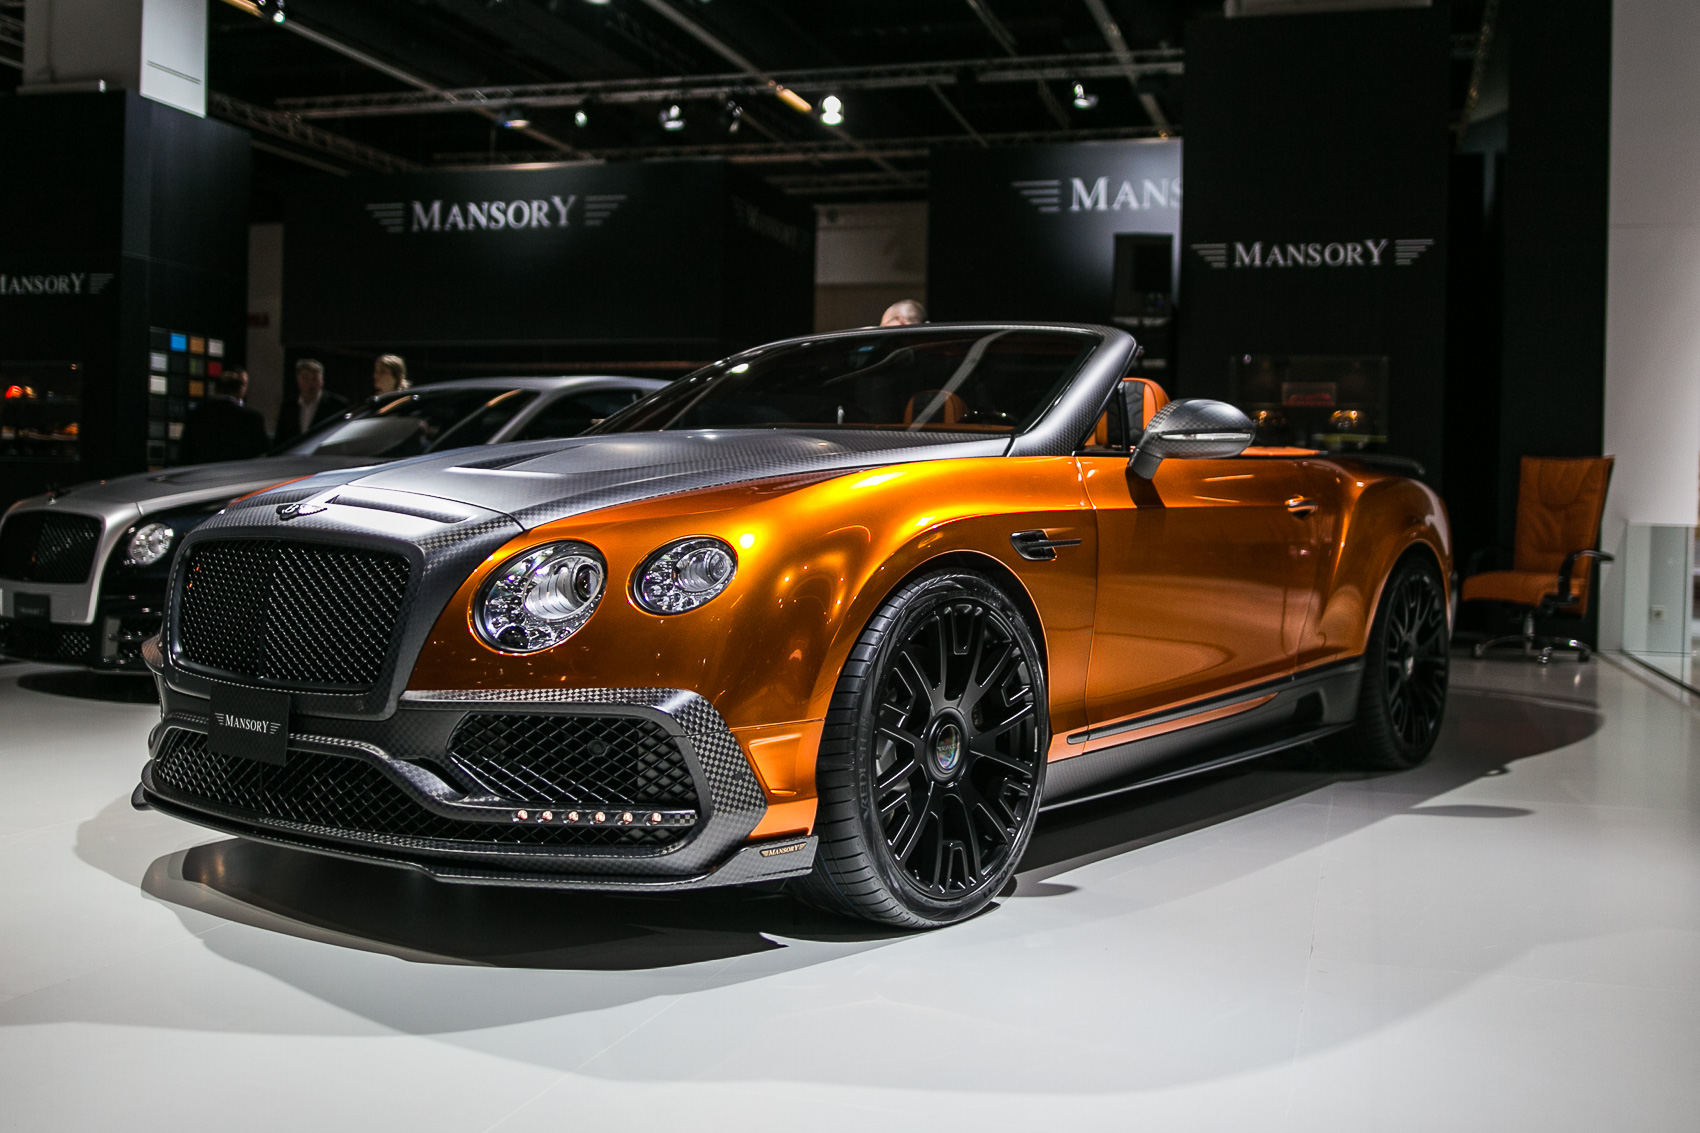 Mansory Bentley GTC Goes Carbon Crazy with 1,001 HP